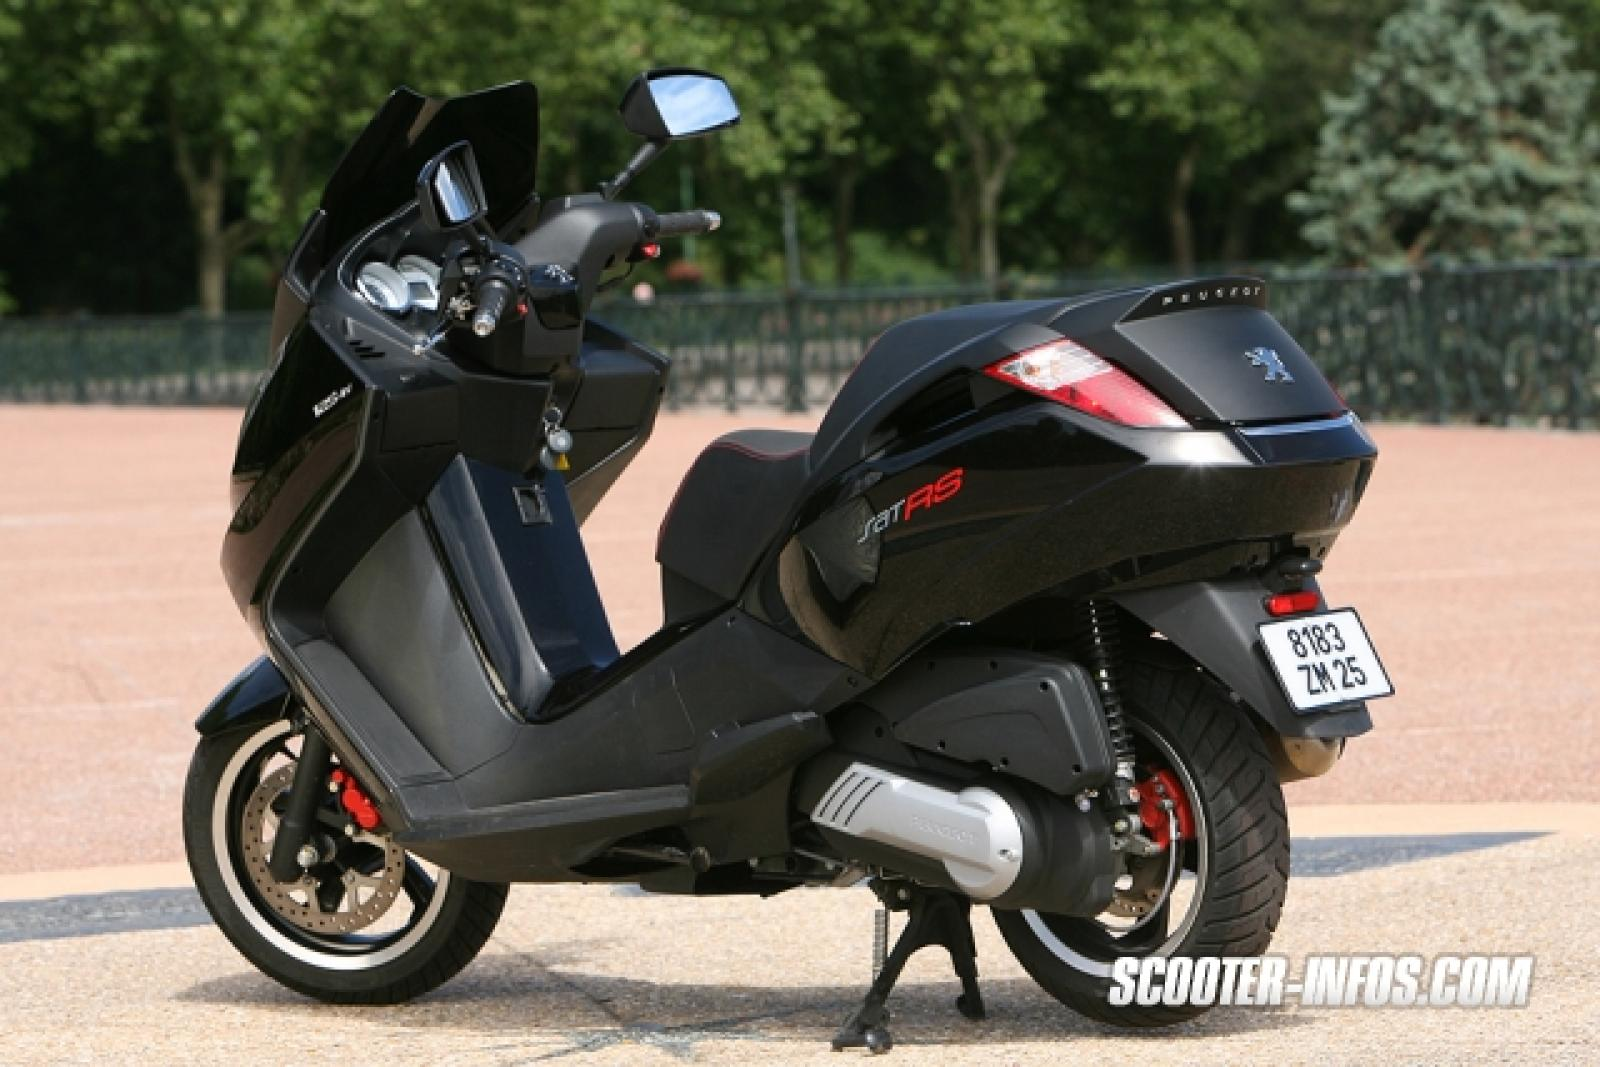 2008 peugeot satelis 125 rs moto zombdrive com. Black Bedroom Furniture Sets. Home Design Ideas